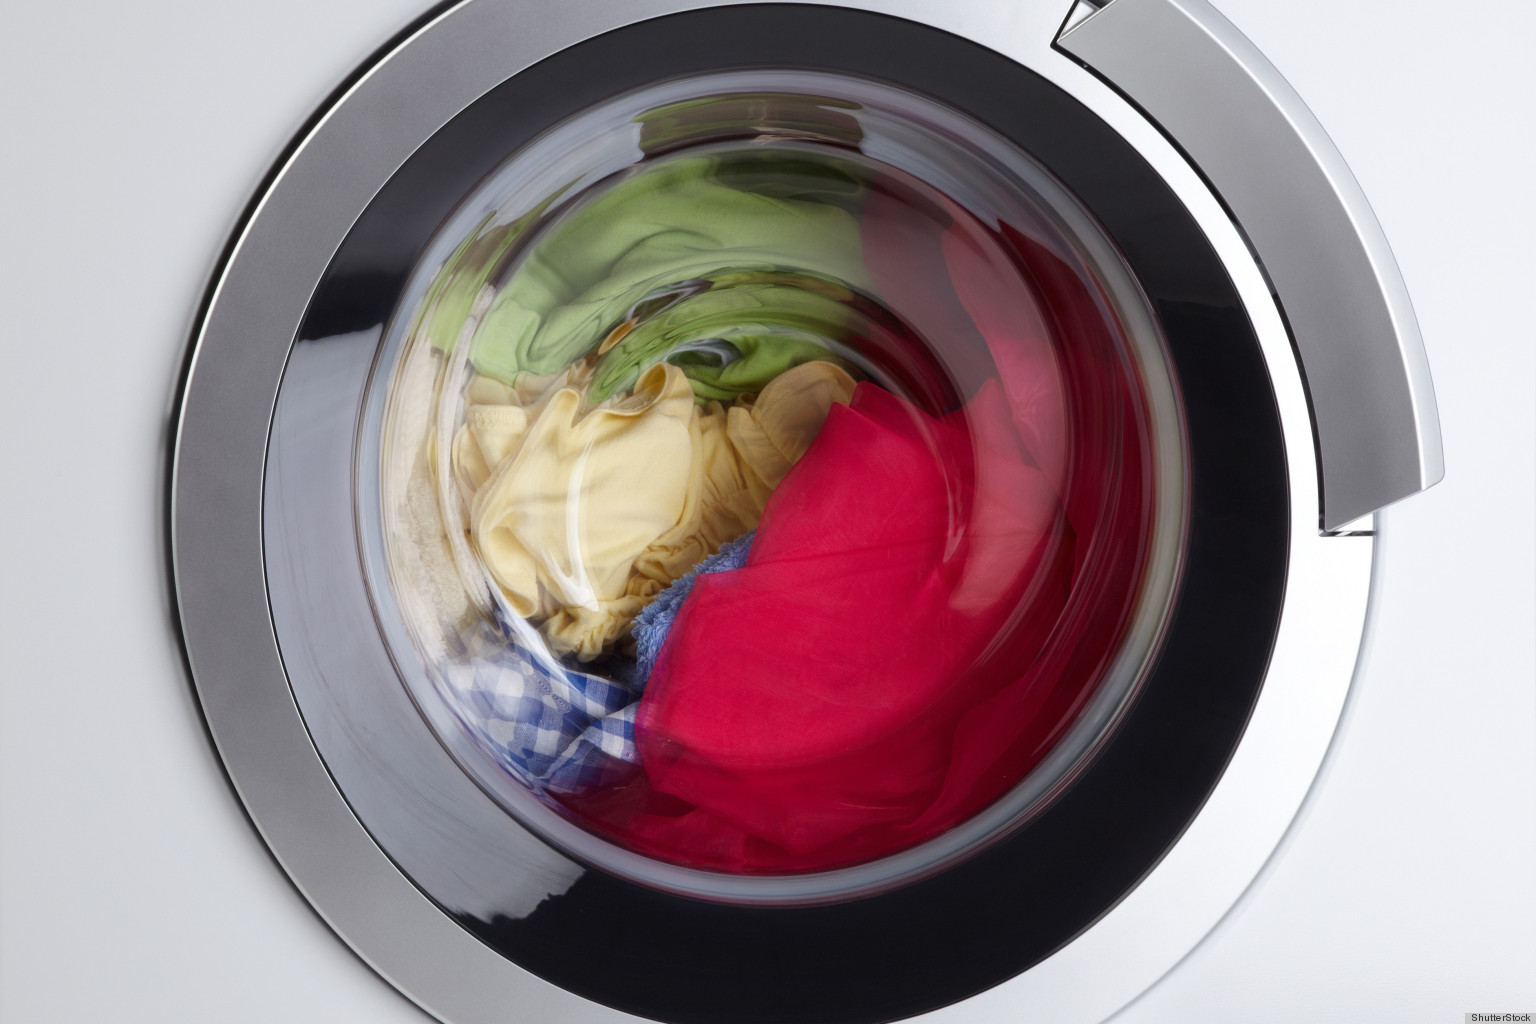 Washing Machines: October 2015